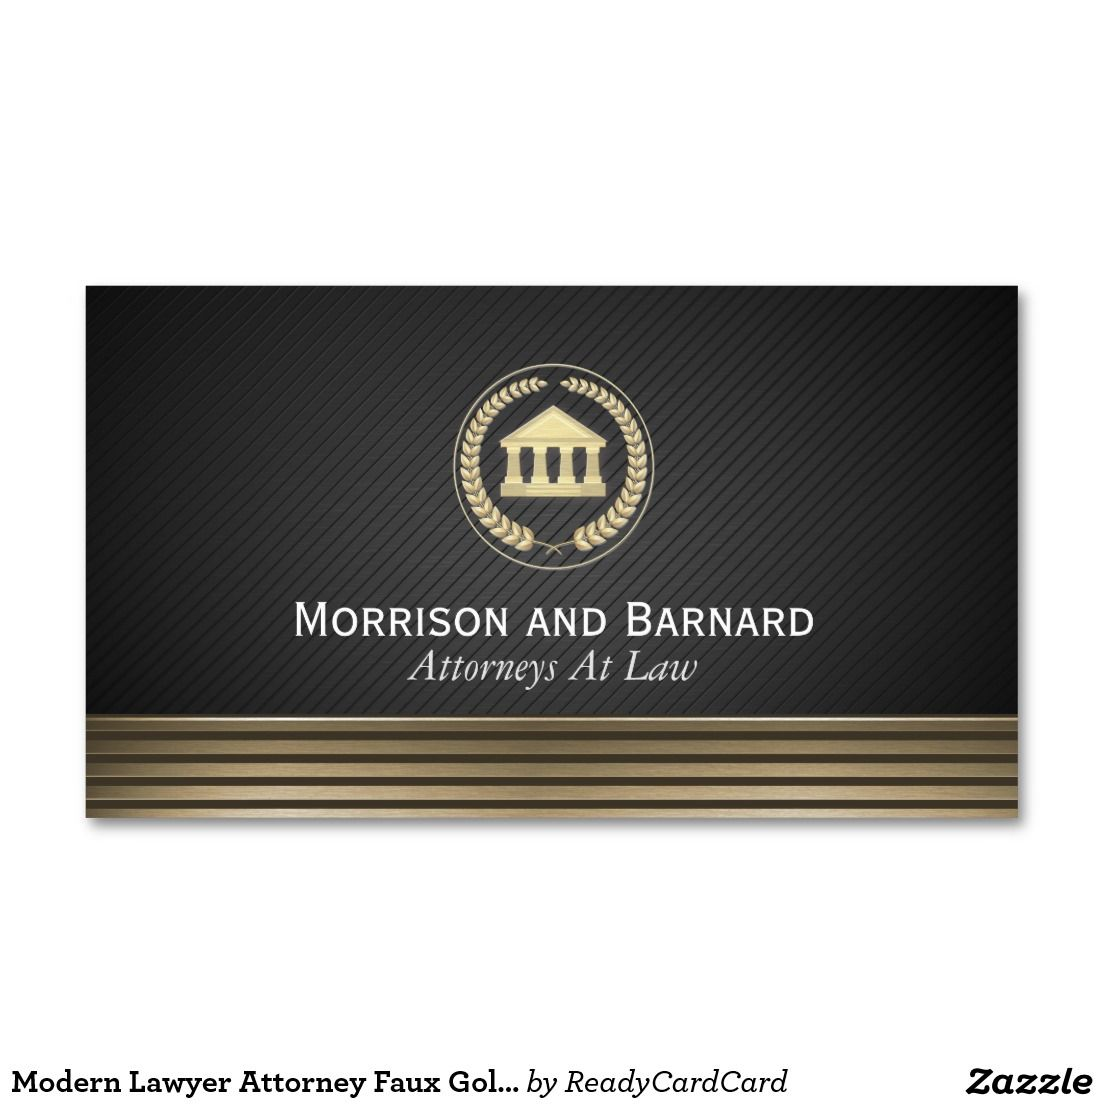 Modern Lawyer Attorney Faux Gold Courthouse Business Card ...